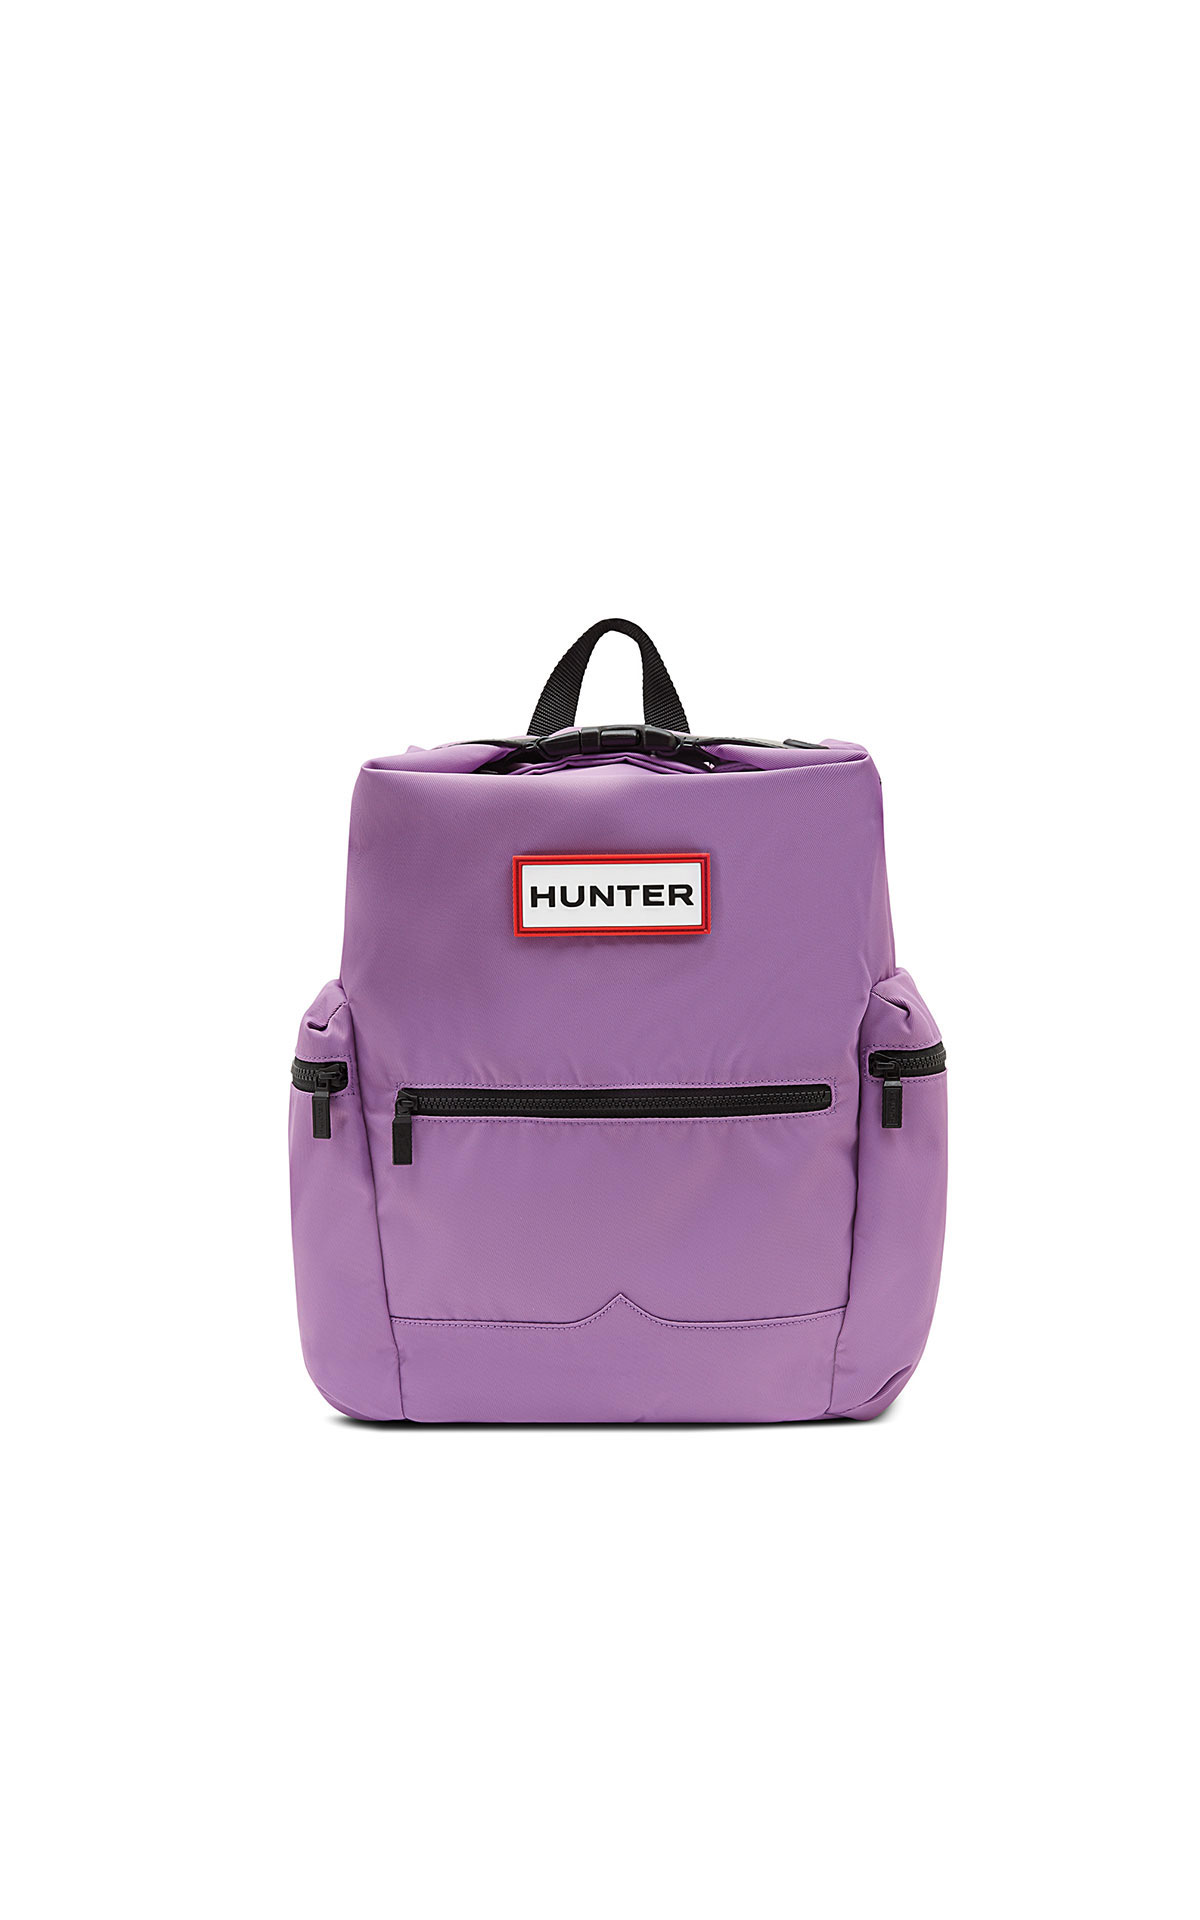 Hunter Original topclip backpack nylon from Bicester Village